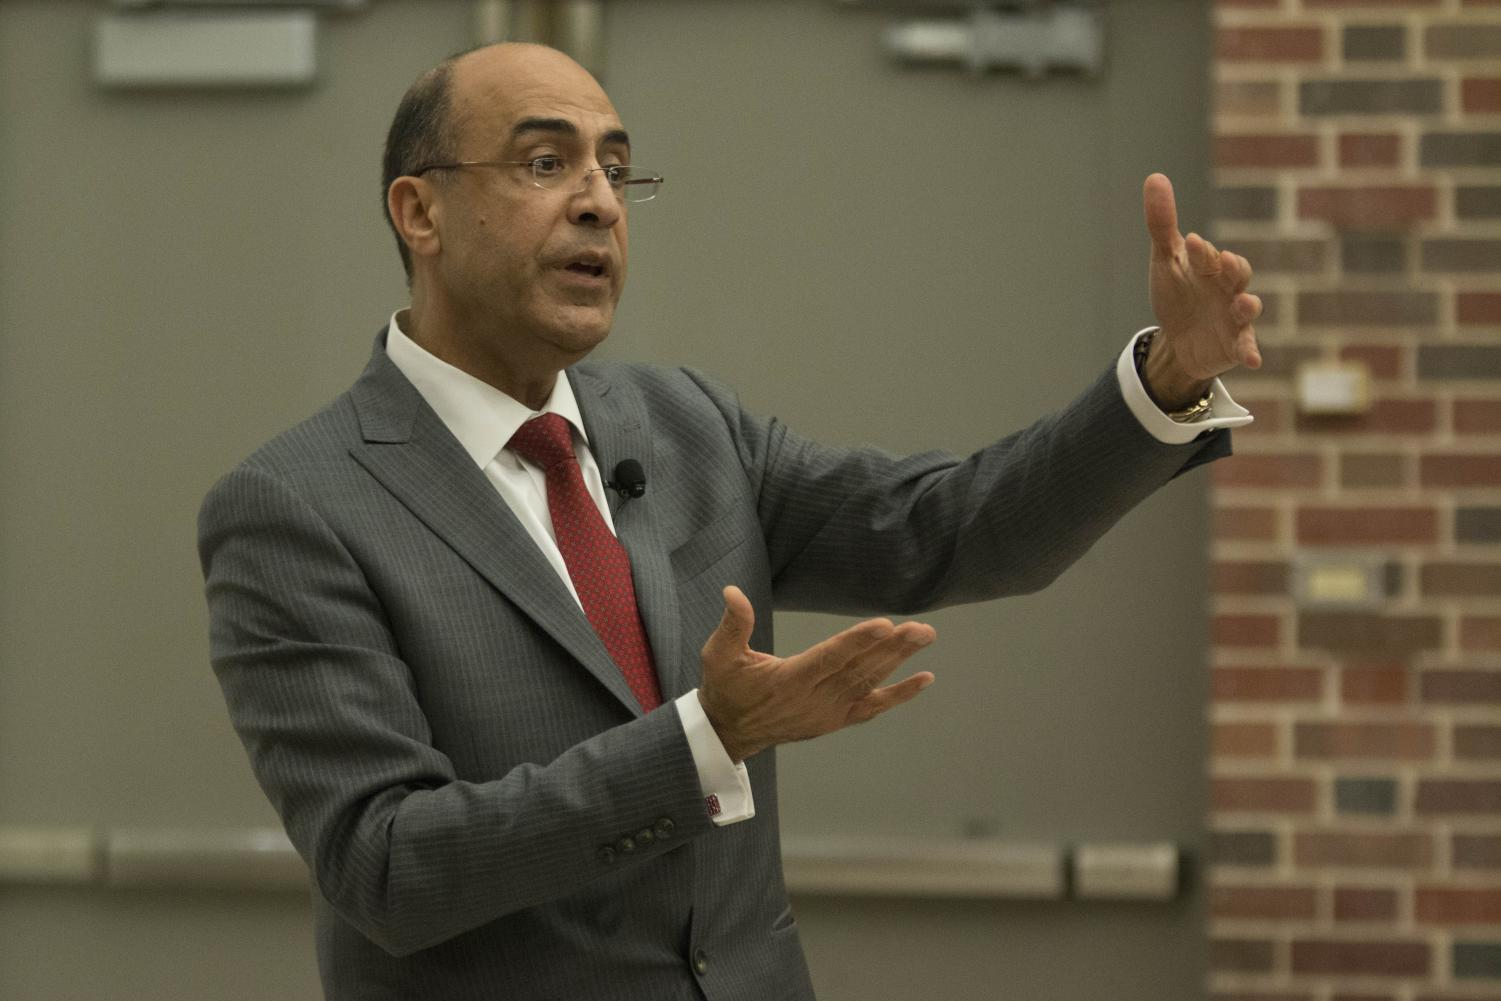 Provost and Chief Academic Officer candidate Dr. Hesham El-Rewini answers questions during public forum held in Hubbard Hall Wednesday afternoon.